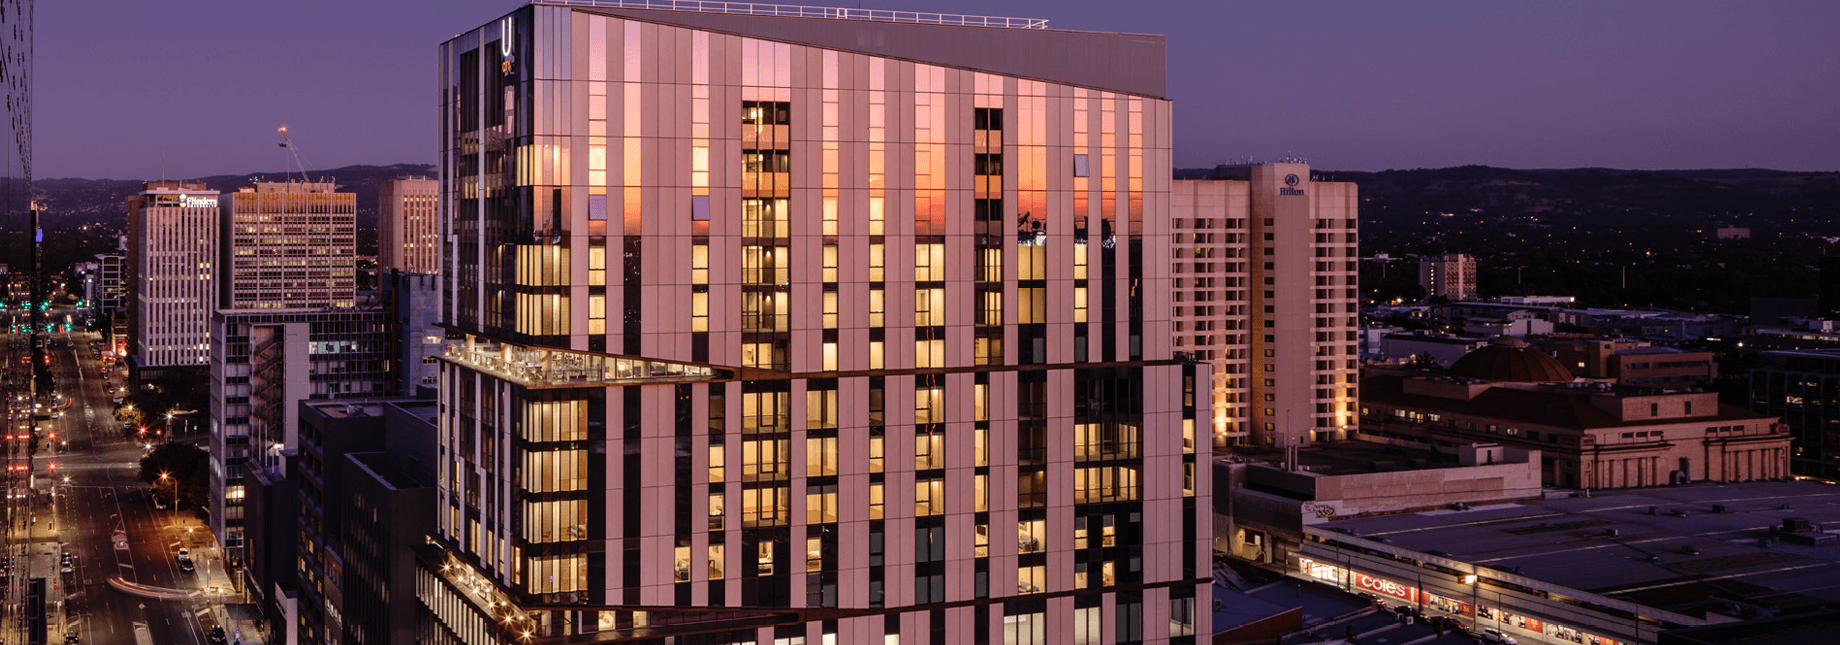 u city building at night time